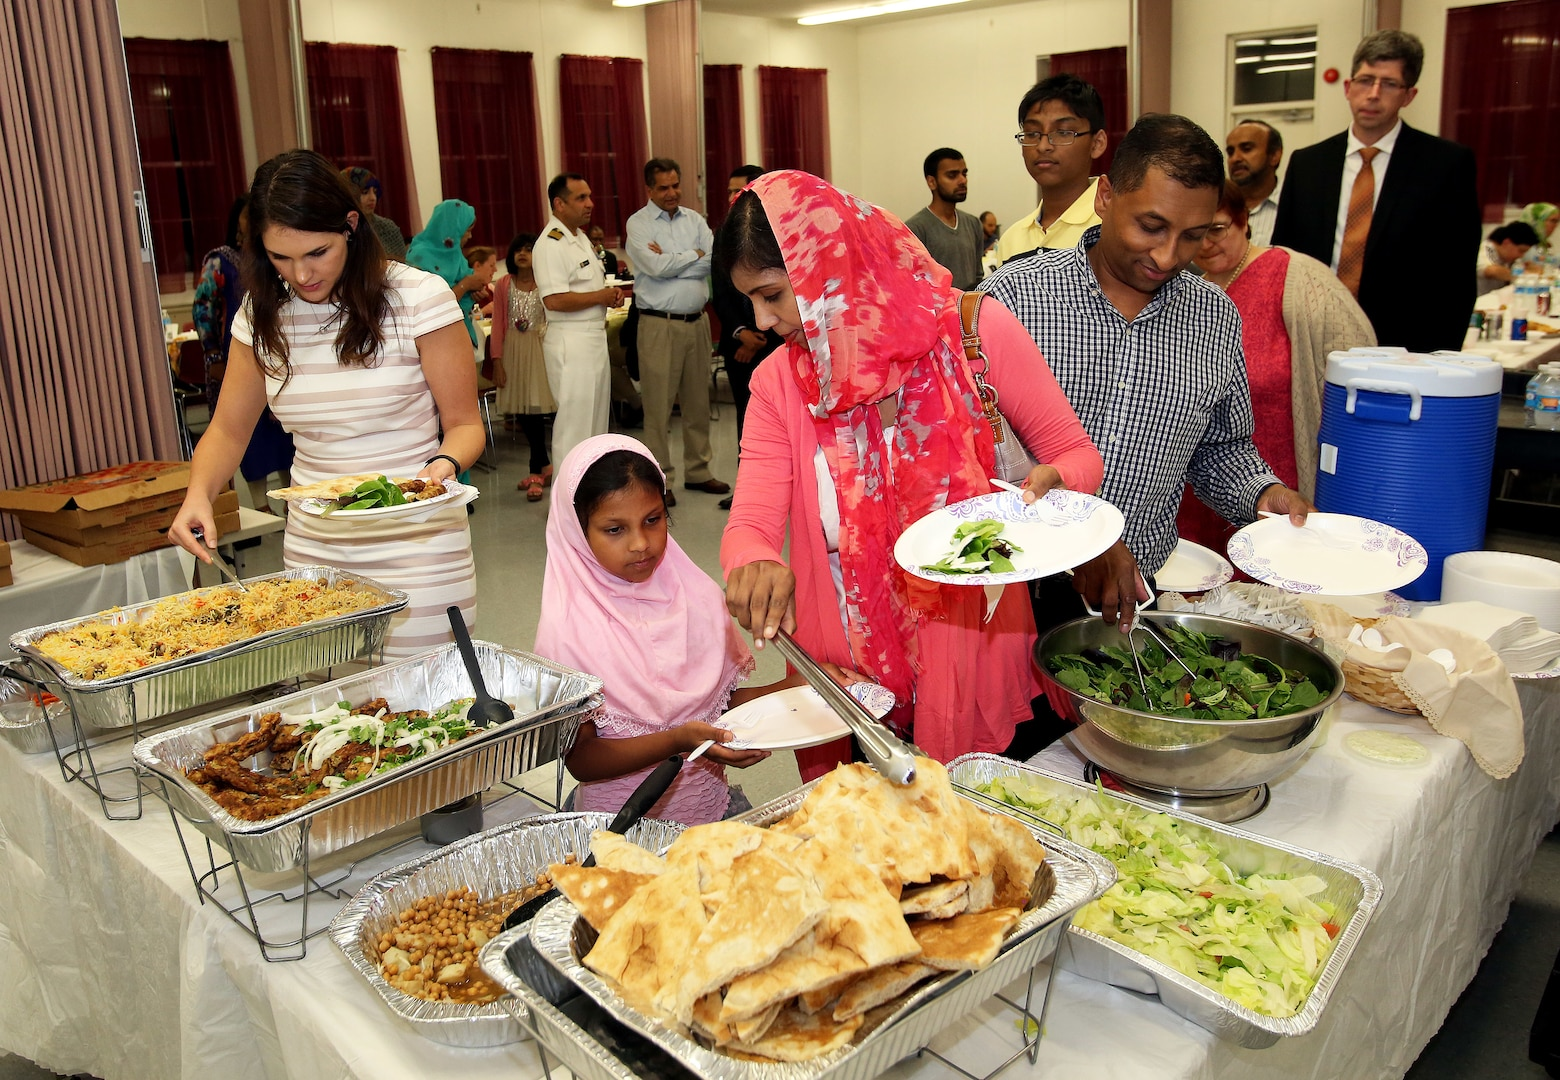 NSA & Fort Meade host the annual Iftar dinner for members of the Muslim community. Photo provided by Fort Meade Public Affairs.